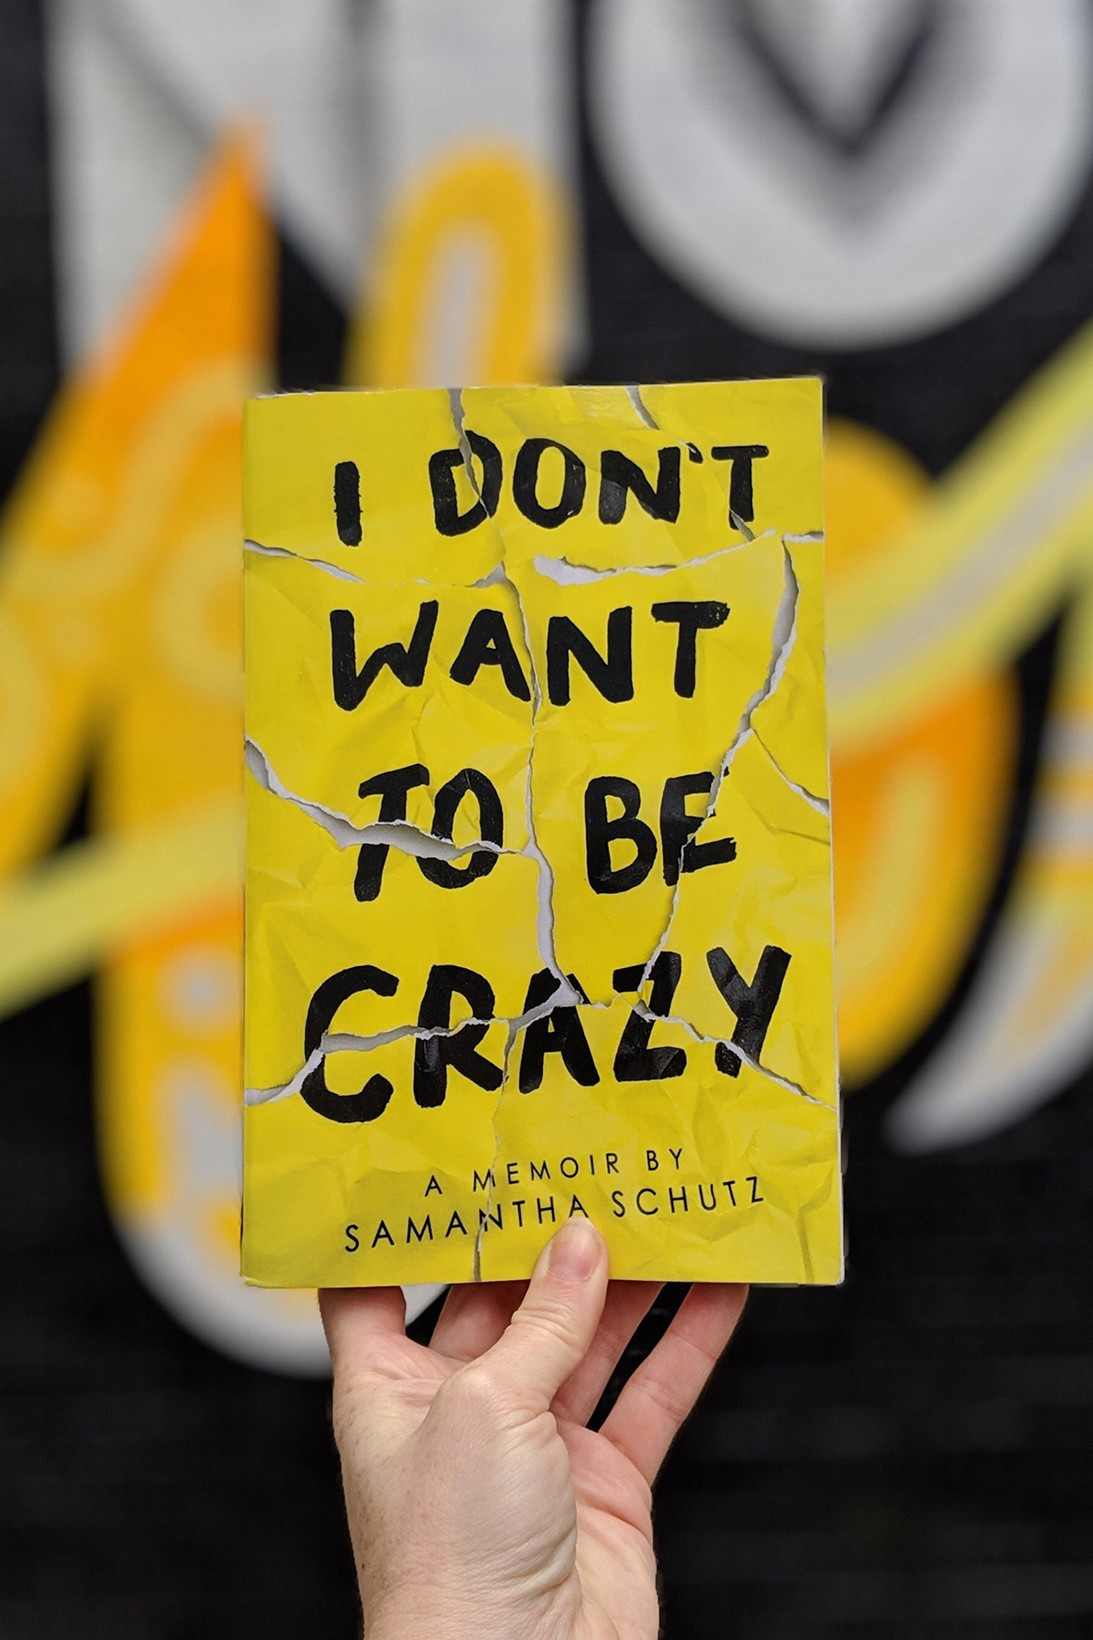 mental health awareness week anxiety attacks depression i dont want to be crazy samantha schutz